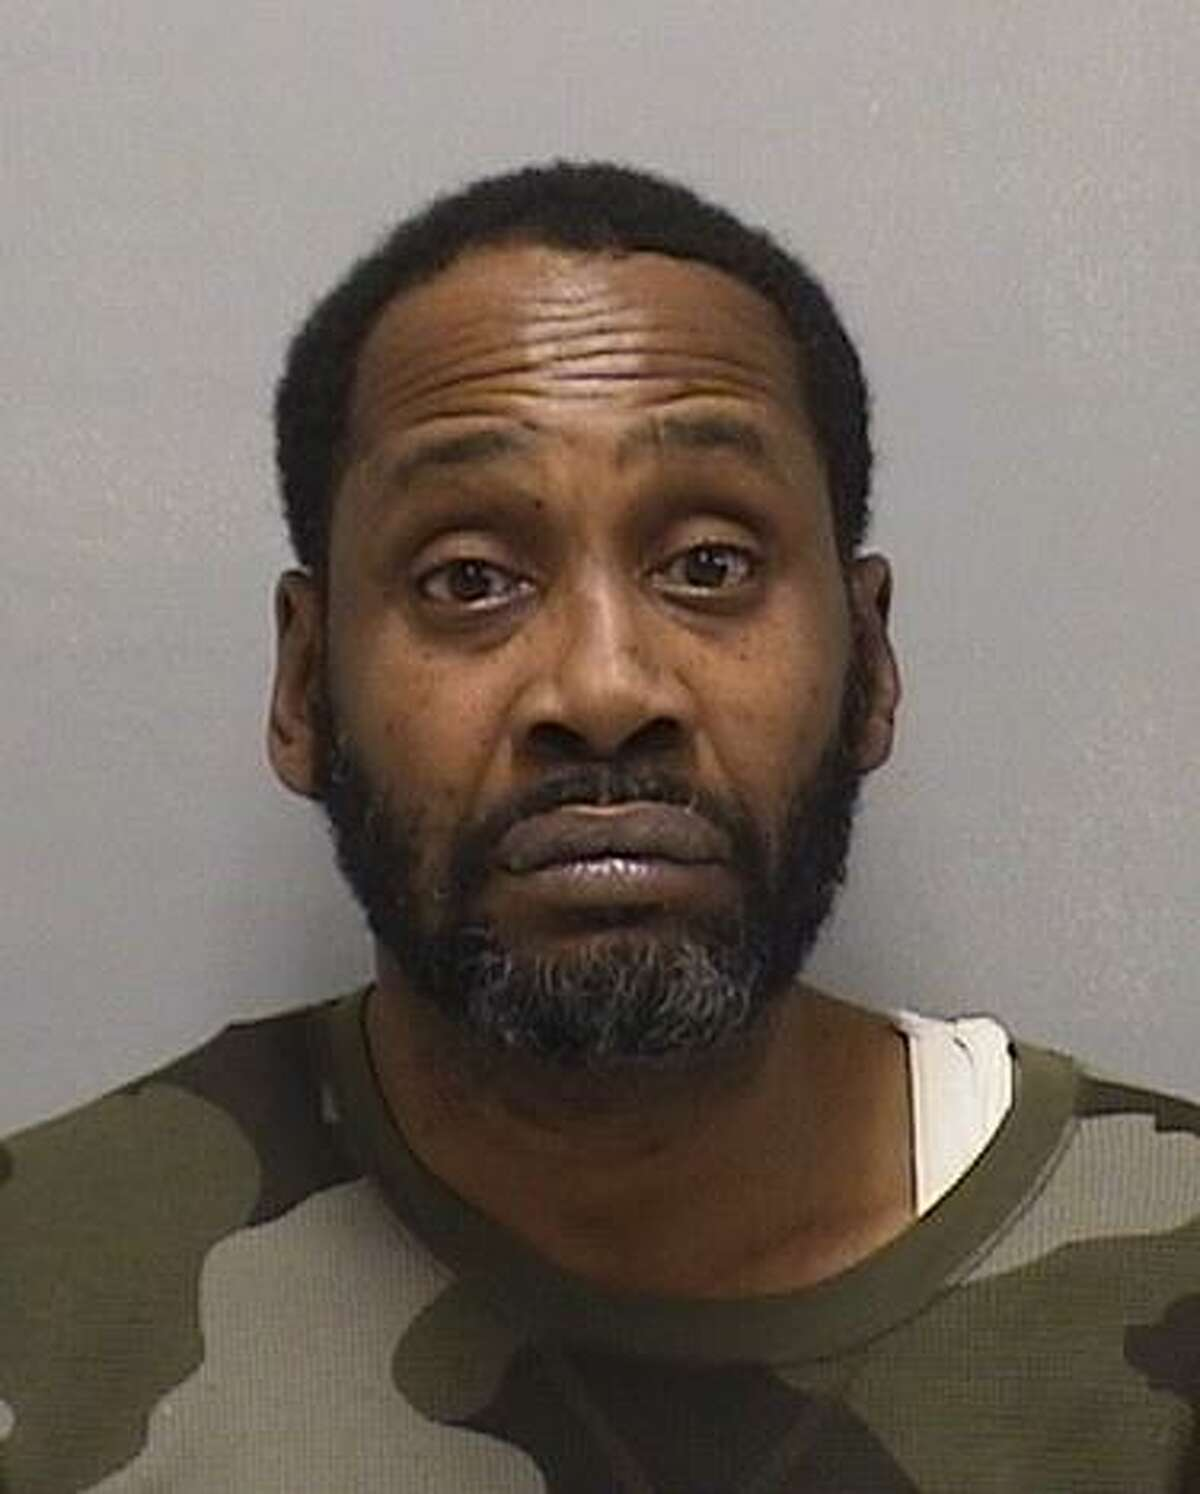 Robert L. Banks, 48, of West Haven,was arrested Feb. 19, 2019 after allegedly trying to steal jackets from Burlington Coat Factory in Orange.